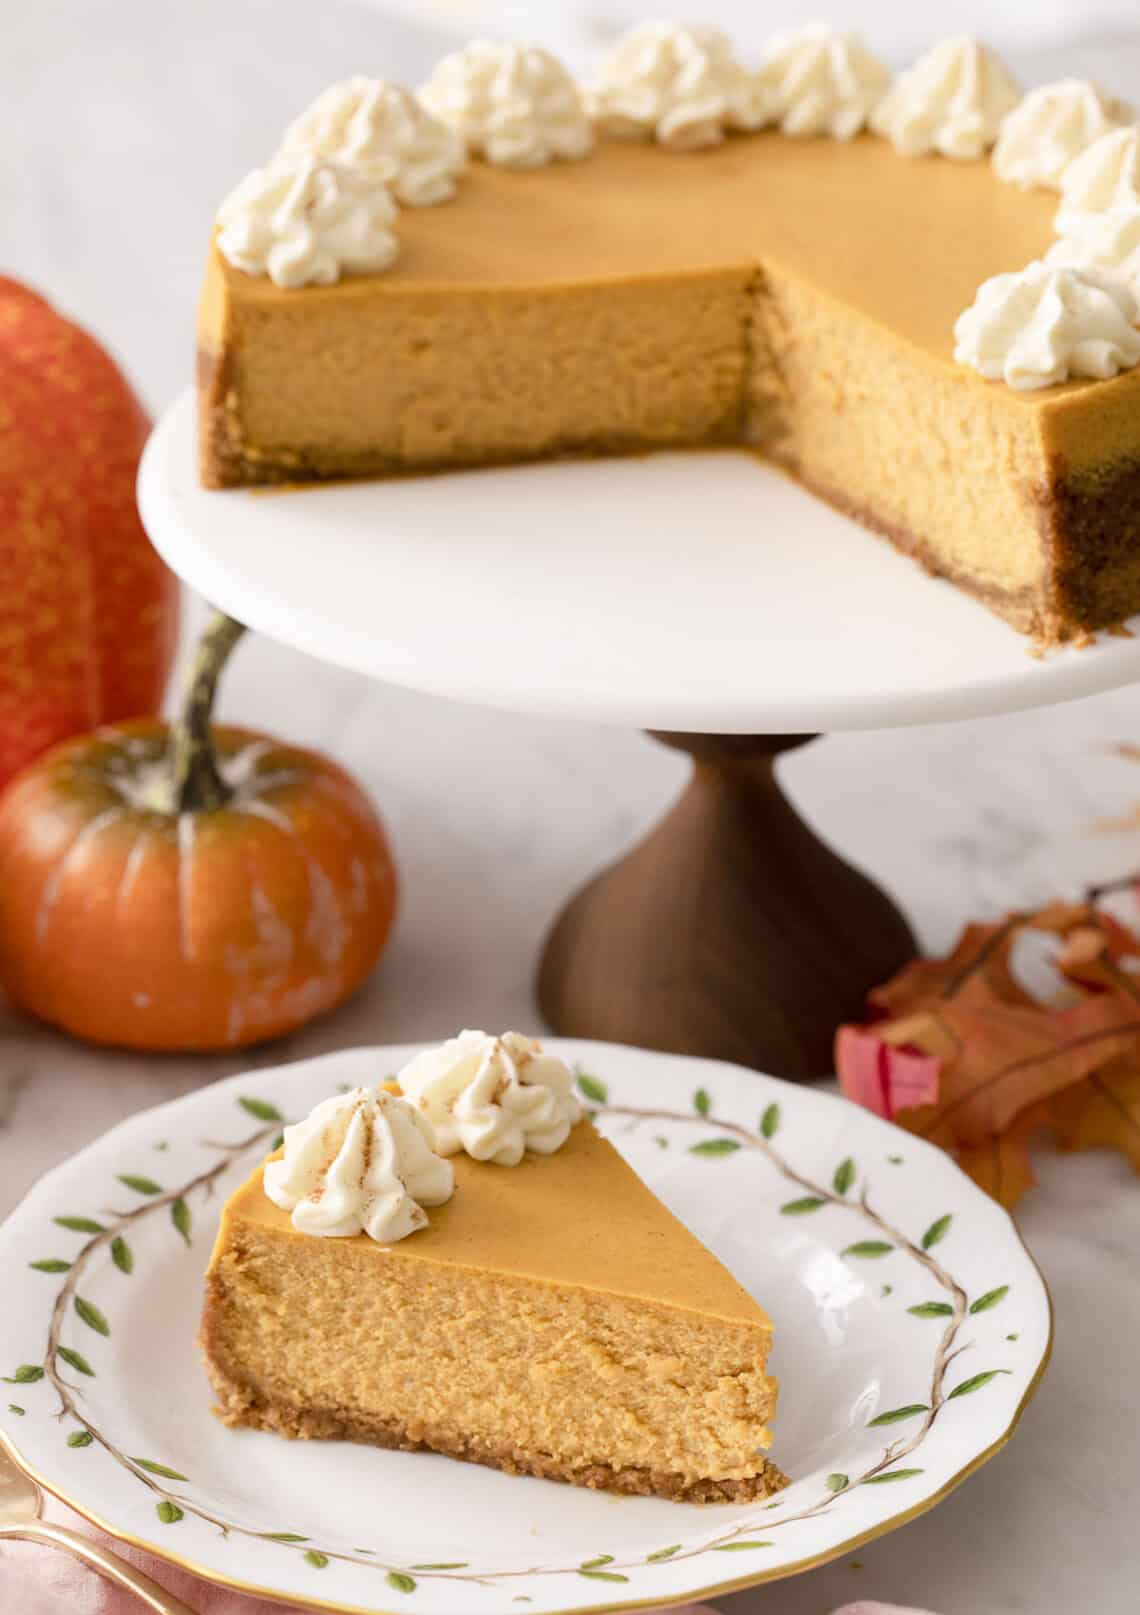 A pumpkin cheesecake on a cake stand with a piece in the foreground.